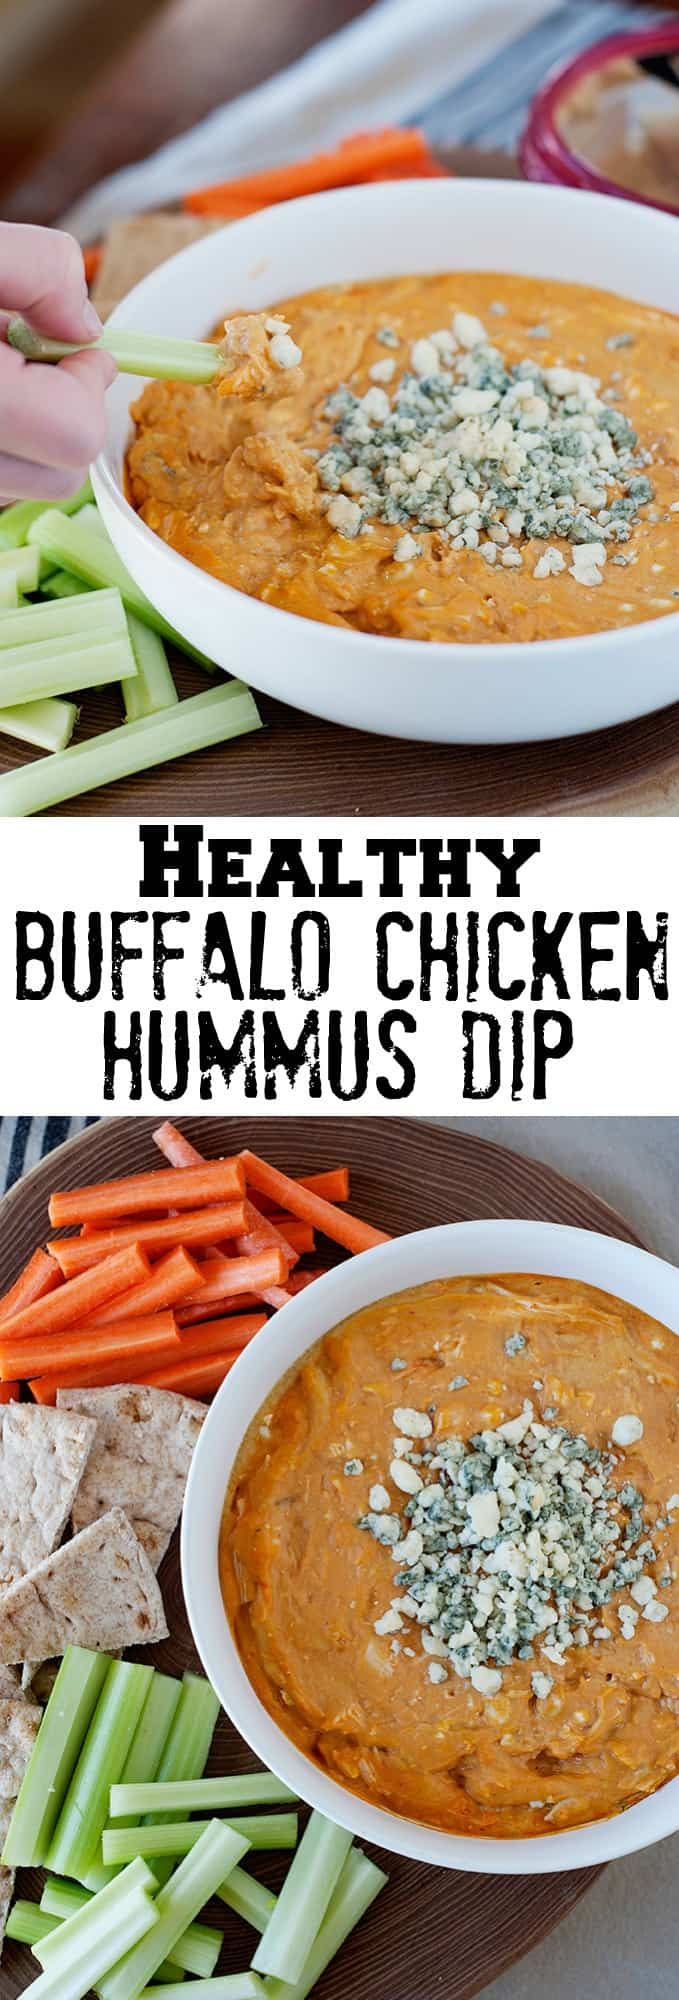 Buffalo Chicken Hummus Dip - This buffalo chicken dip recipe is unlike anything you've had before. It's the perfect gameday recipe and one your family and friends will ask you for the recipe!